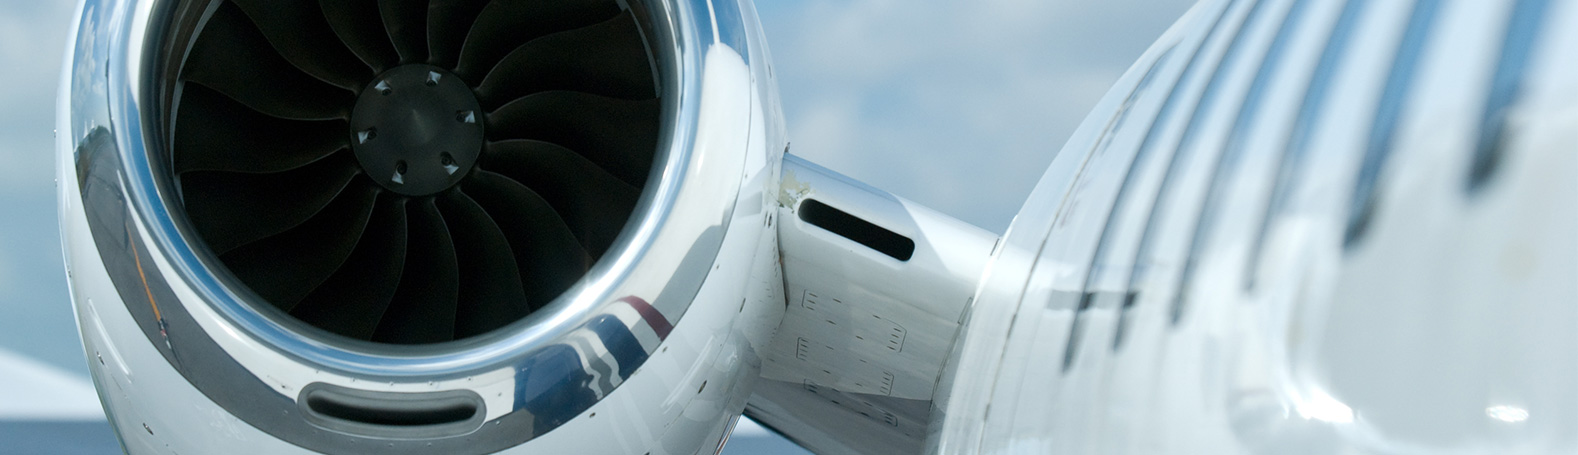 Aircraft Technical Completion Services - Emerald Aviation